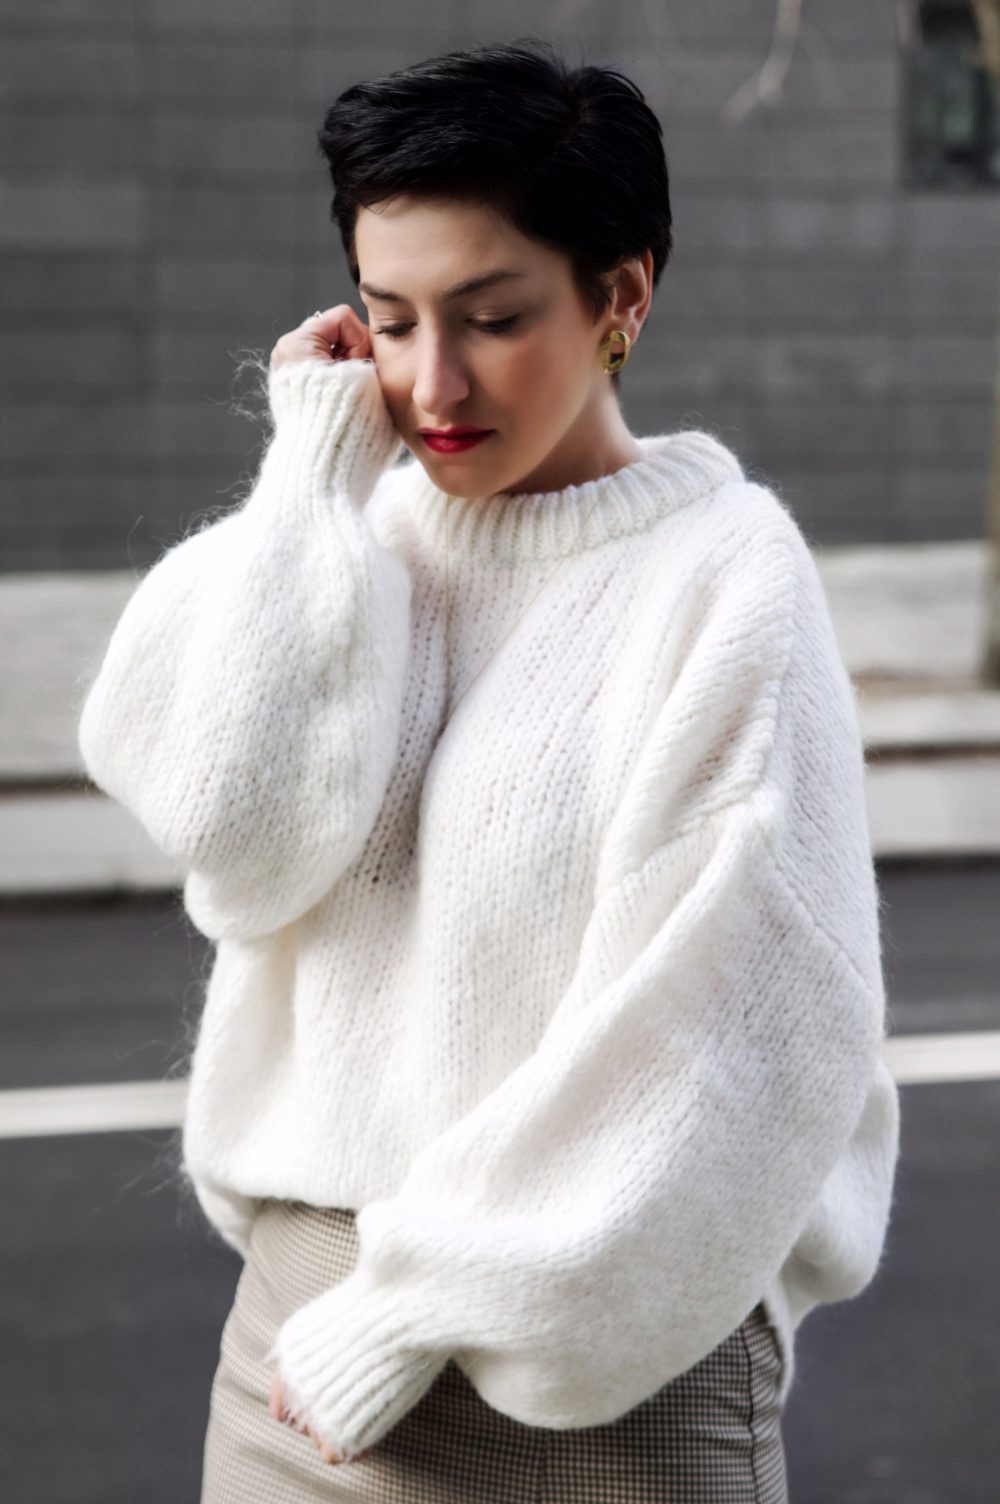 WHITE KNITWEAR, WHITE SWEATER, OVERSIZED SWEATER, ZARA SWEATER, WINTER LOOK, SPRING OUTFIIT, casual look